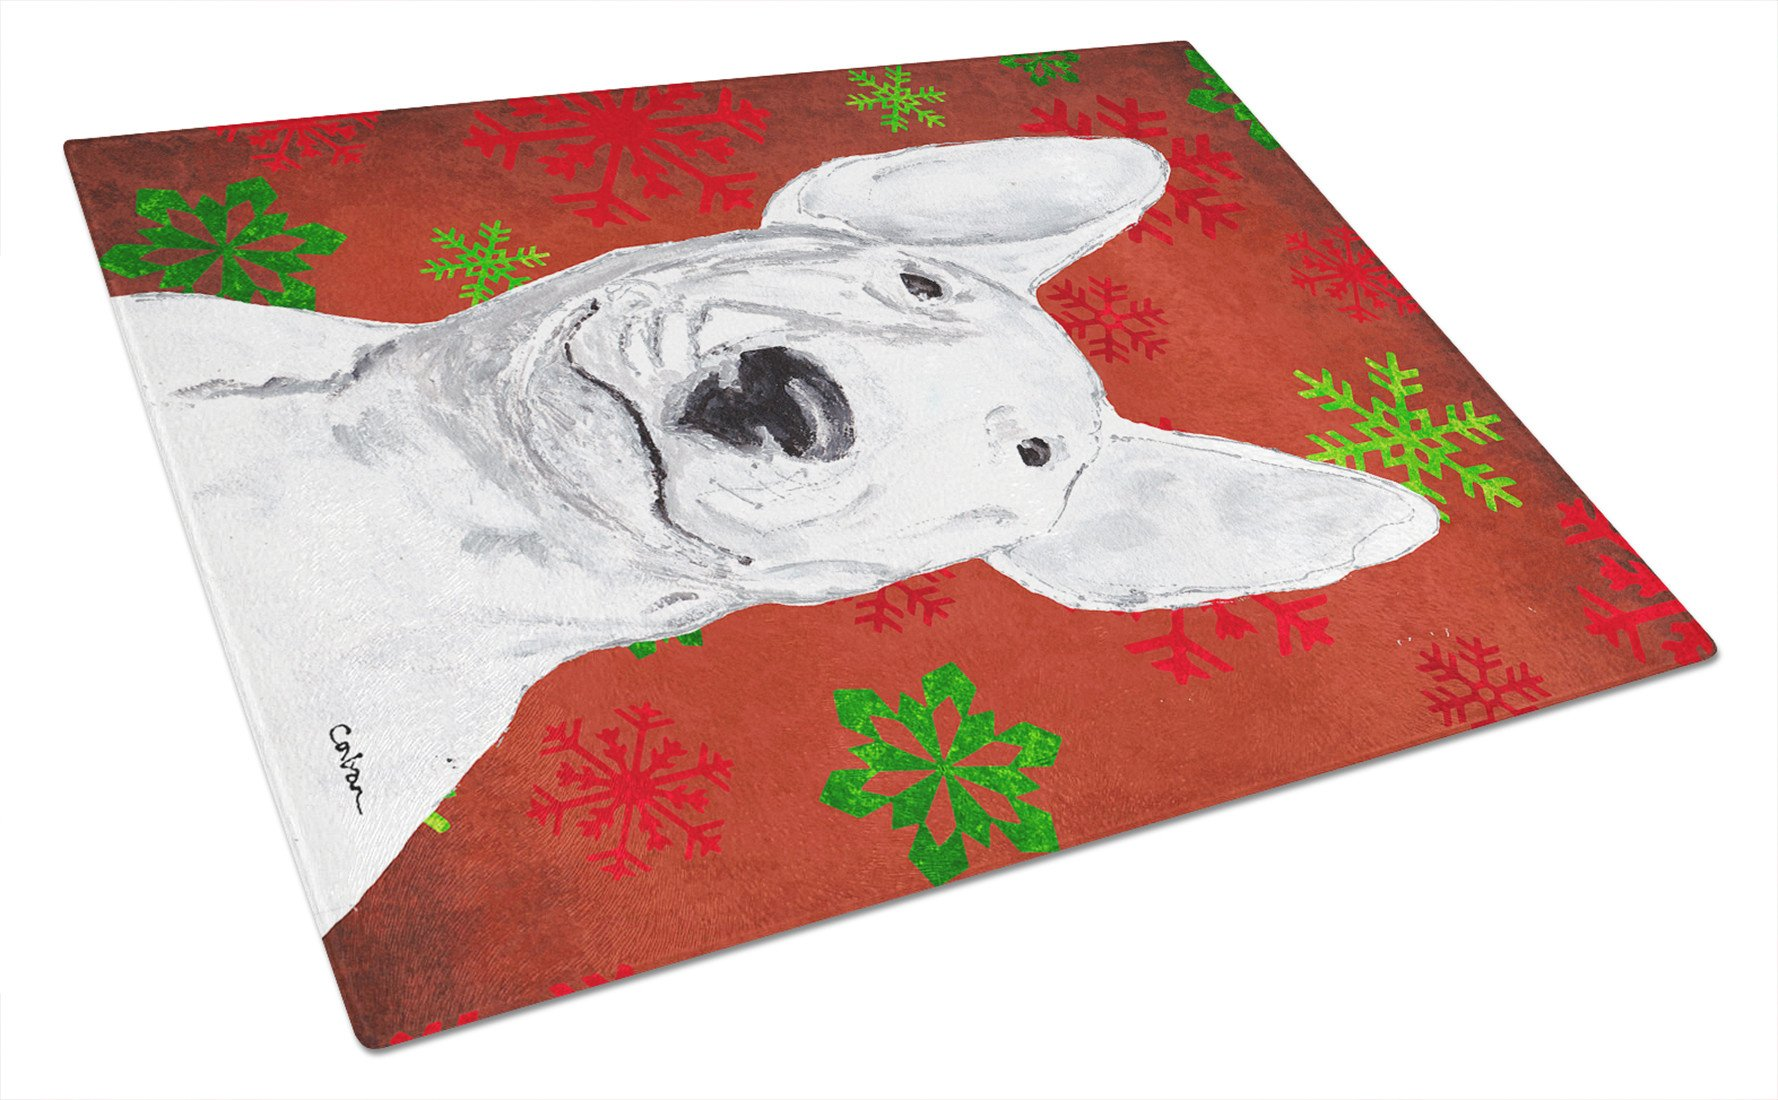 Bull Terrier Red Snowflake Christmas Glass Cutting Board Large by Caroline's Treasures